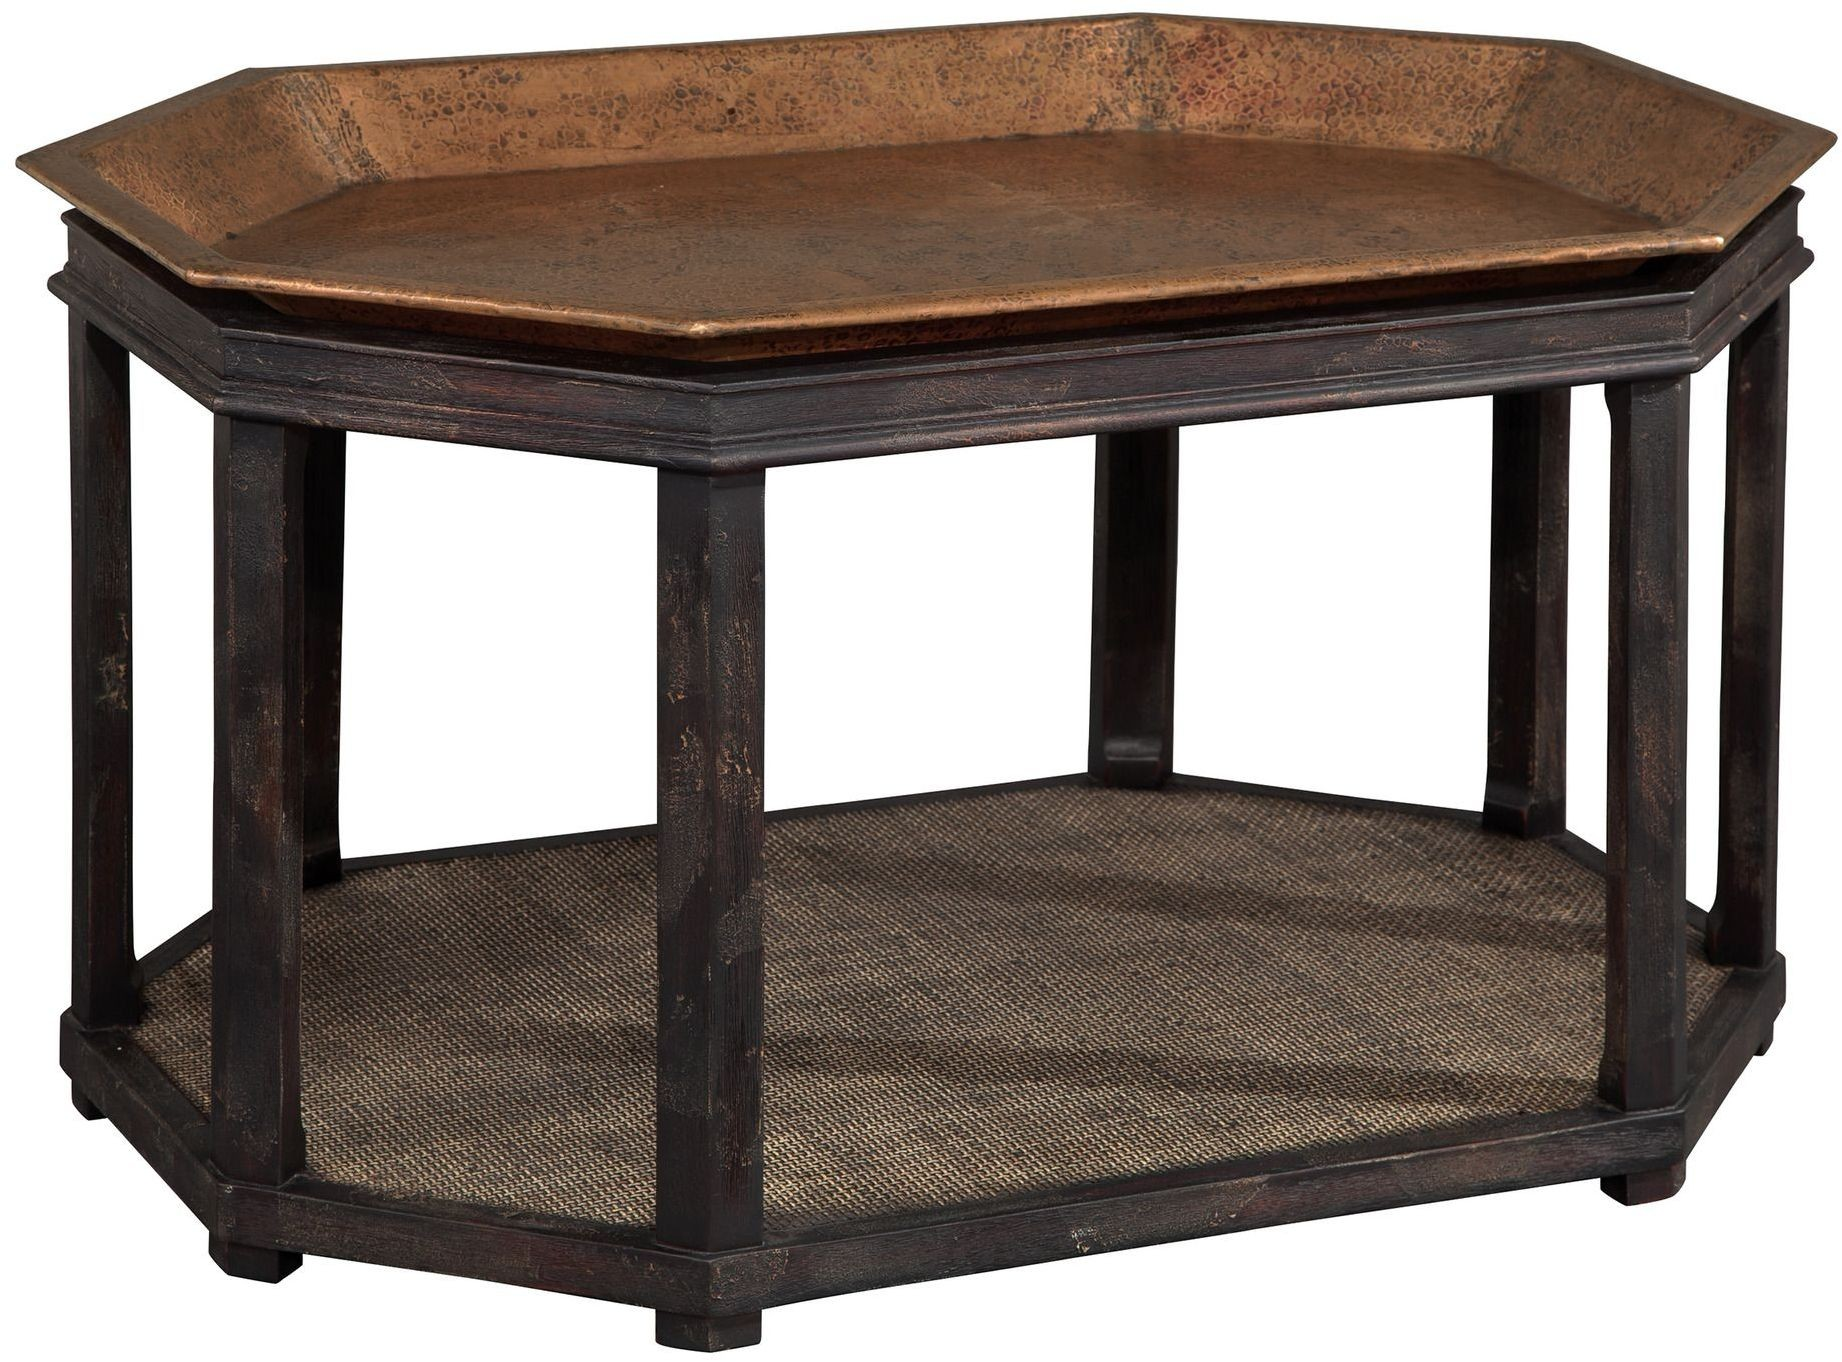 Hammered Copper Tray Coffee Table from Hekman Furniture